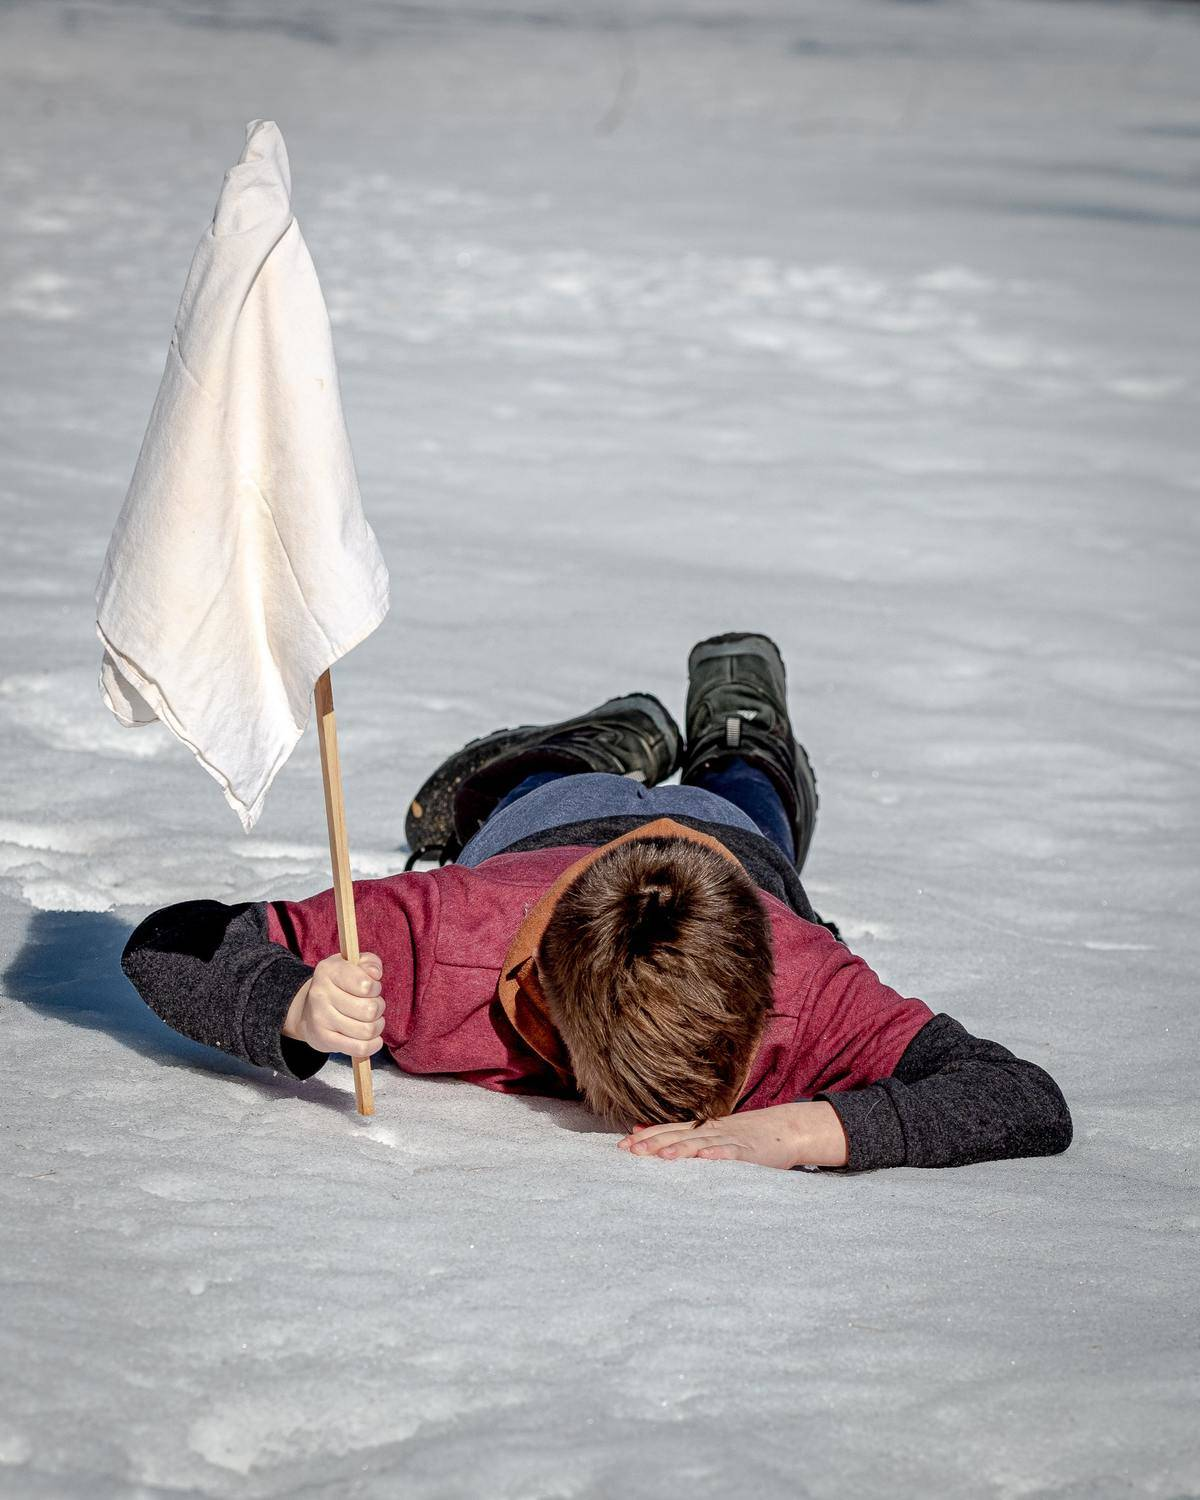 man laying on ice with white flag